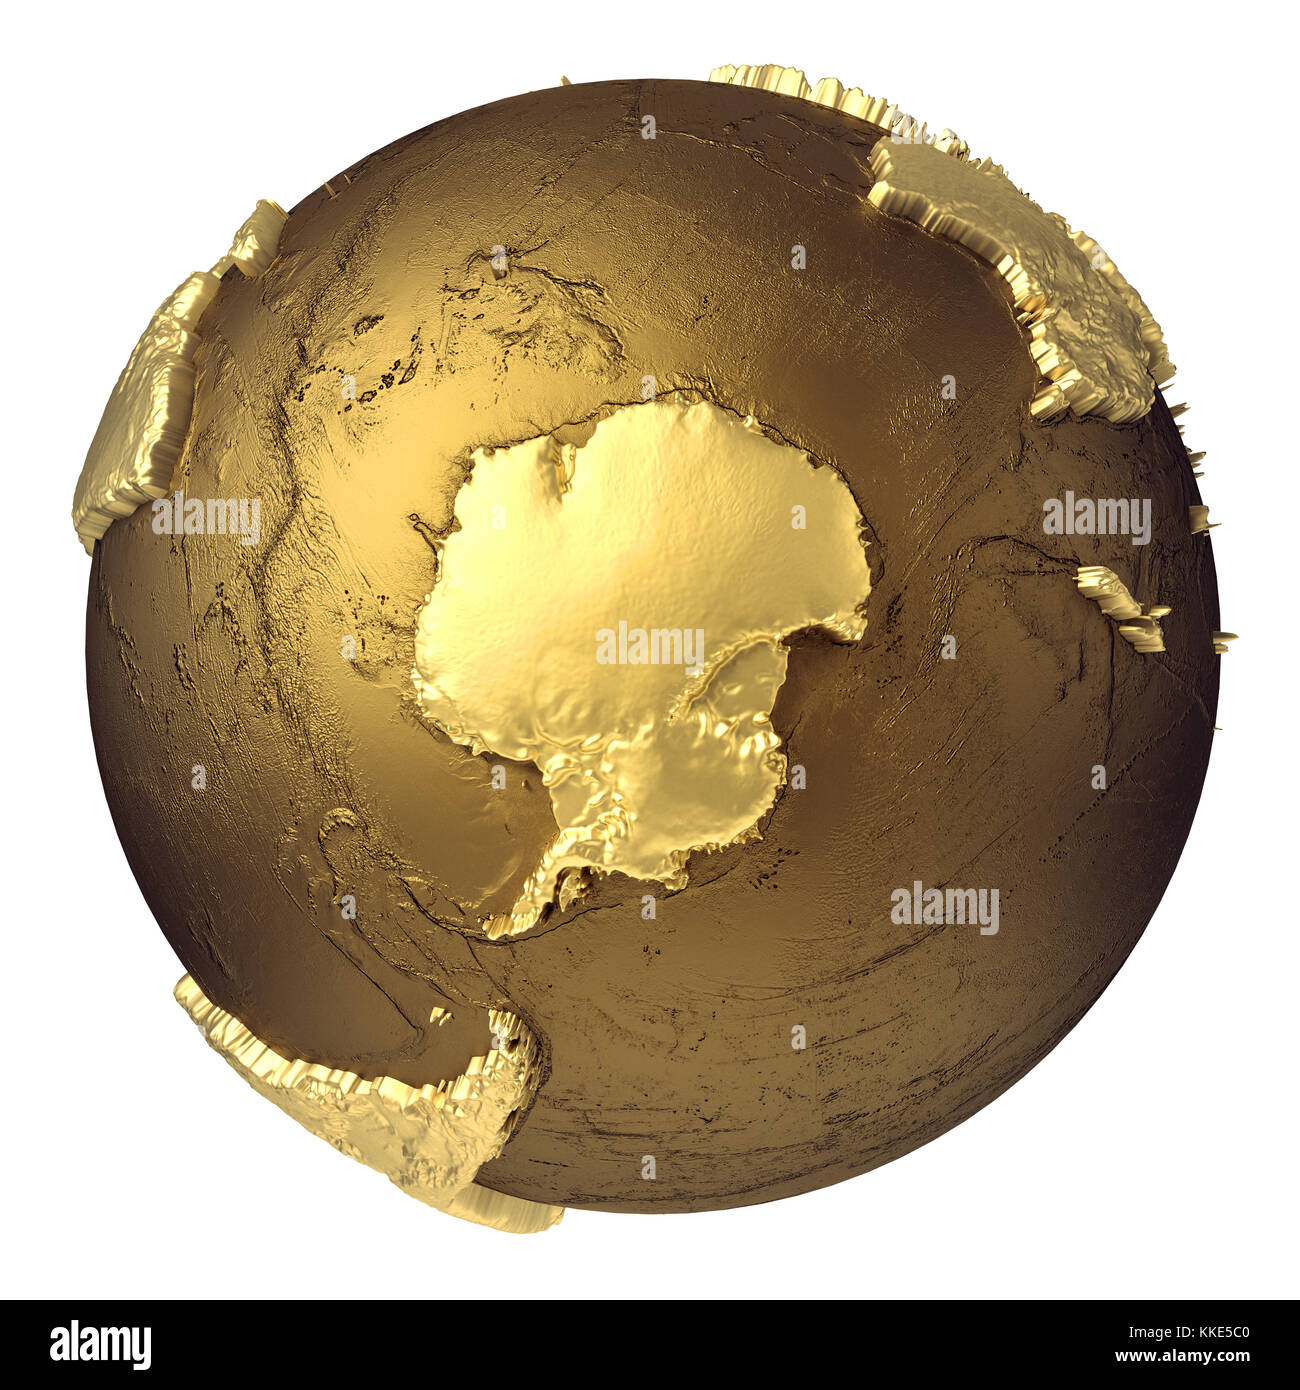 Golden globe model without water antarctica 3d rendering isolated golden globe model without water antarctica 3d rendering isolated on white background elements of this image furnished by nasa publicscrutiny Choice Image